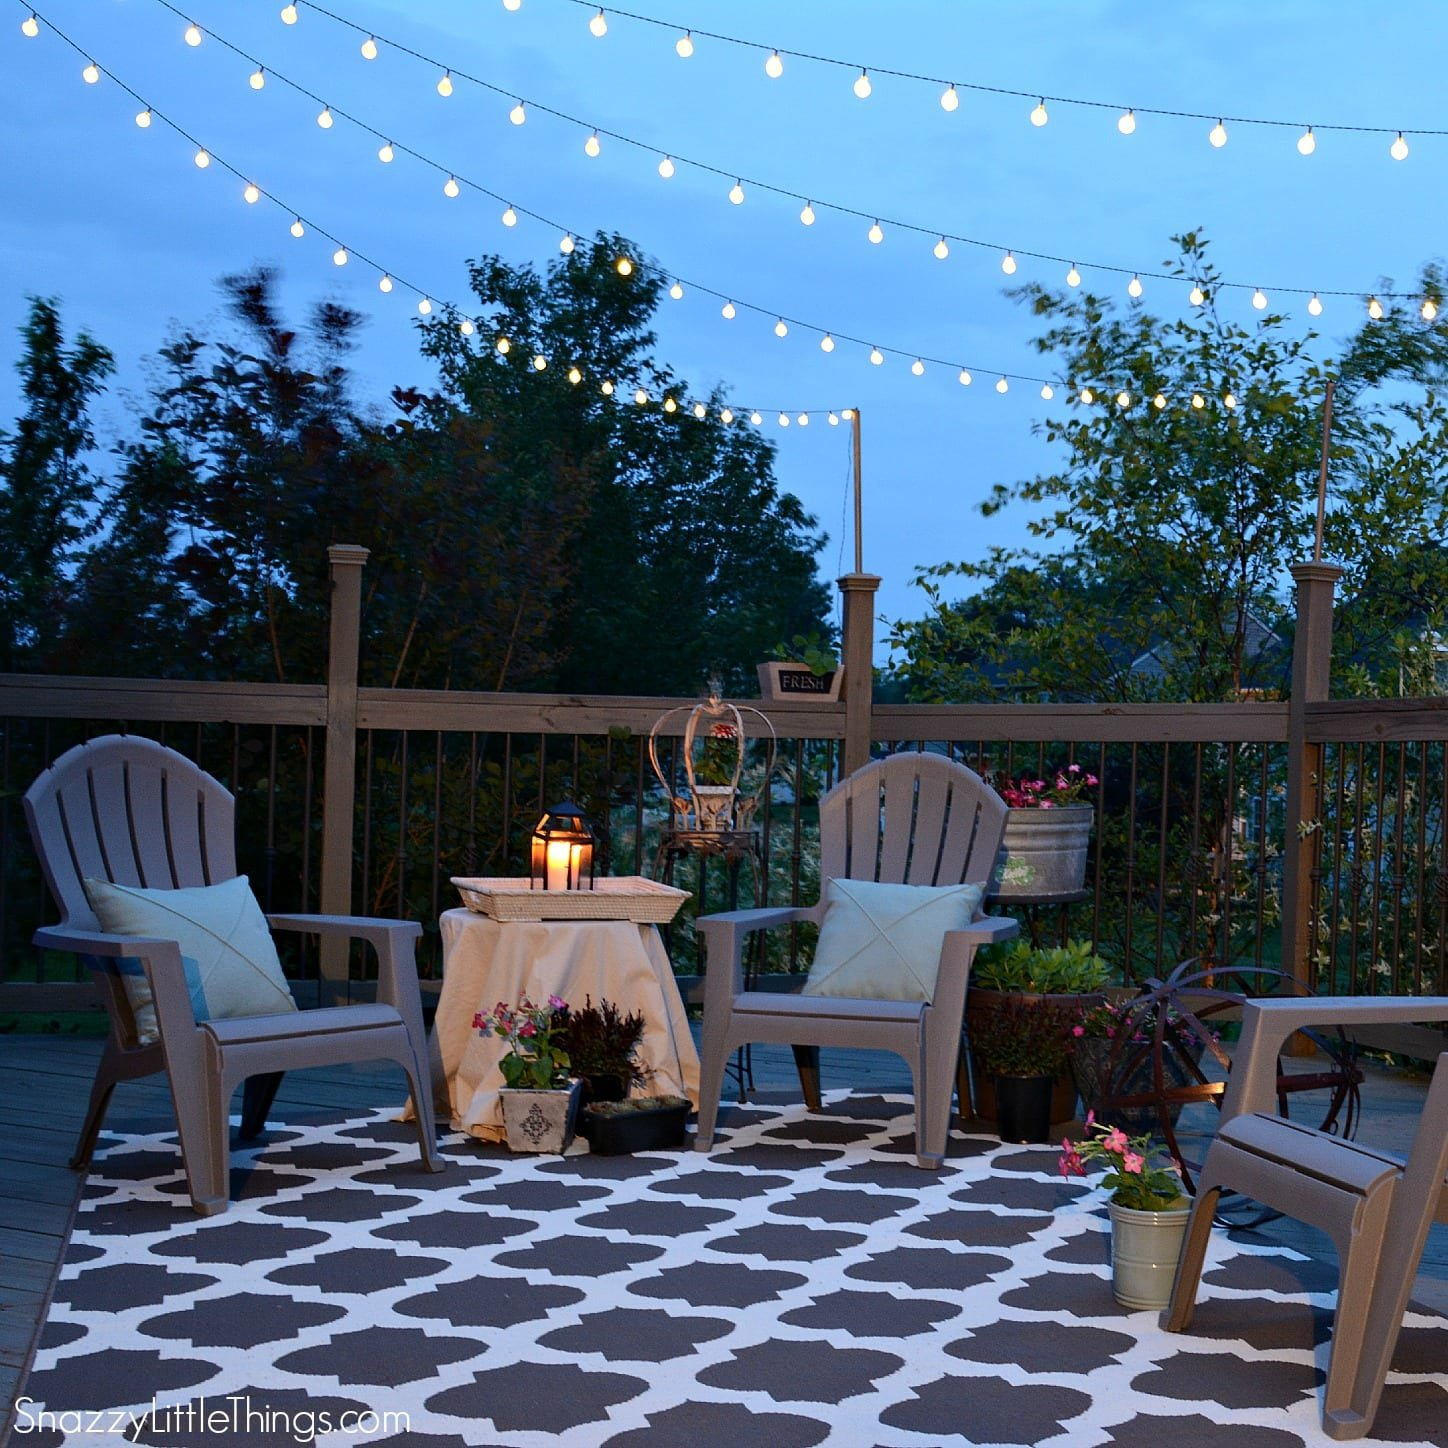 Backyard Decor On A Budget Inspirational Bud Outdoor Hacks and Ideas